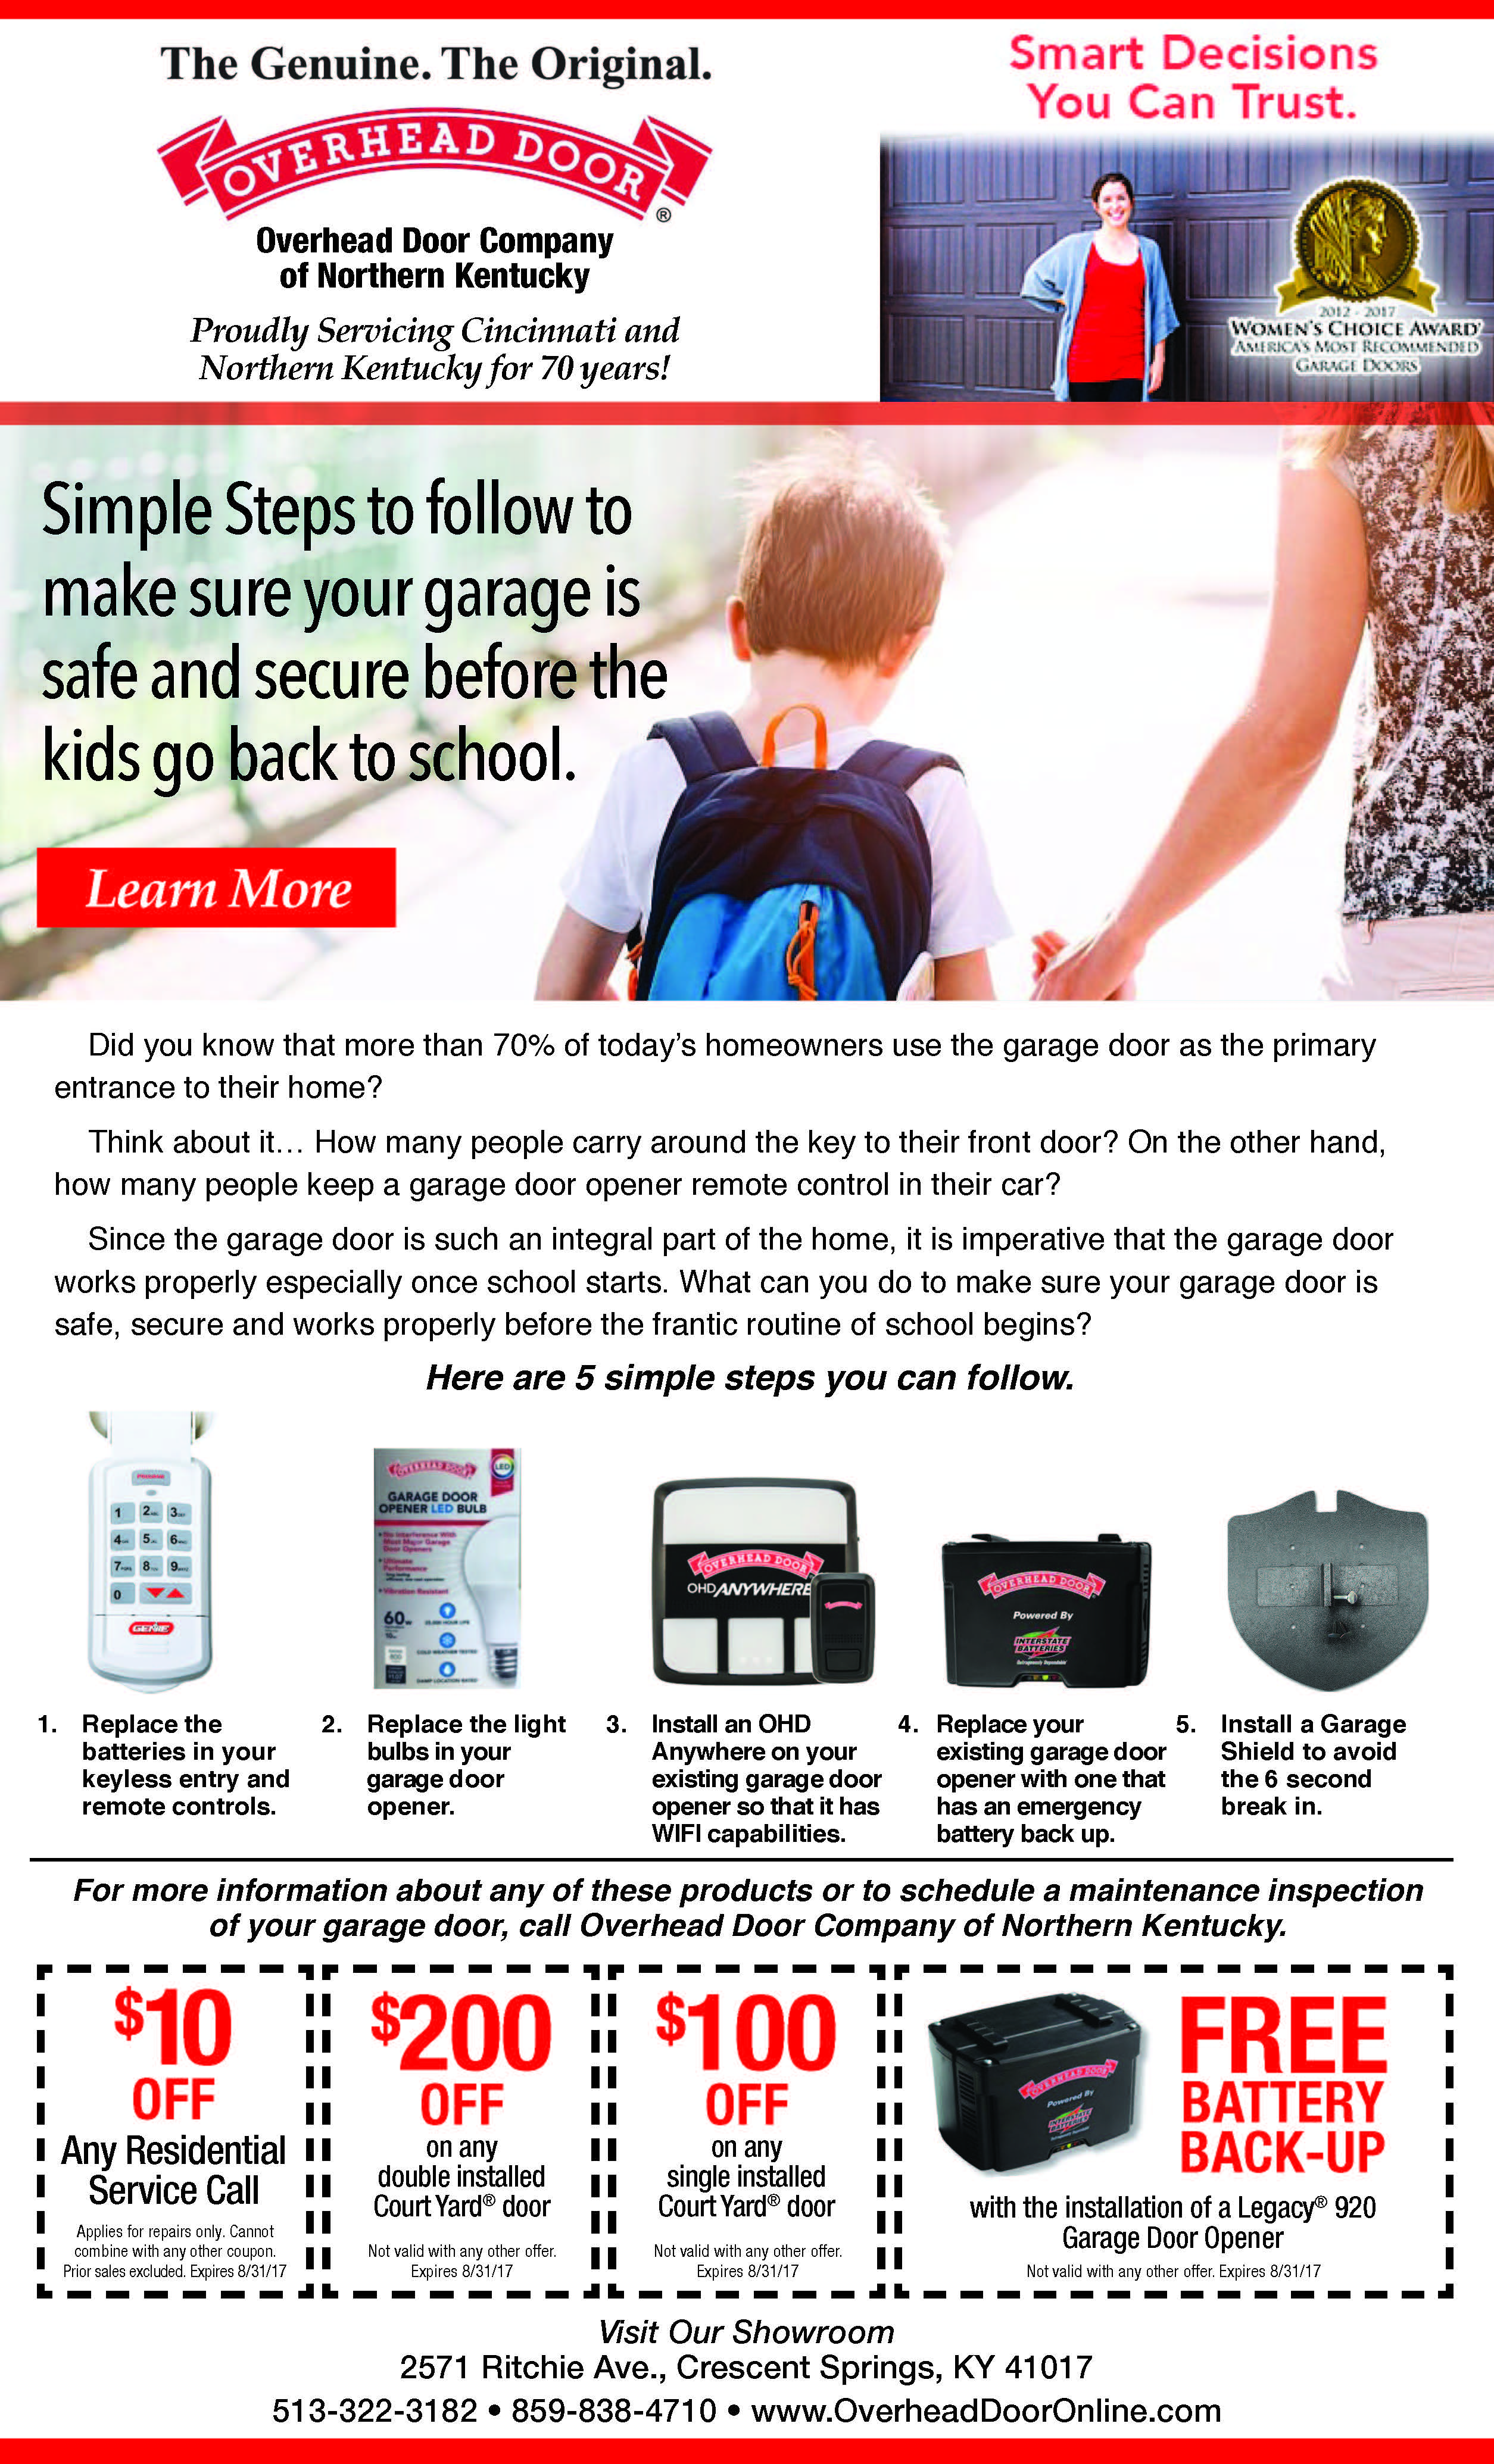 How to Make Your Garage Door Safe and Secure Before School Starts